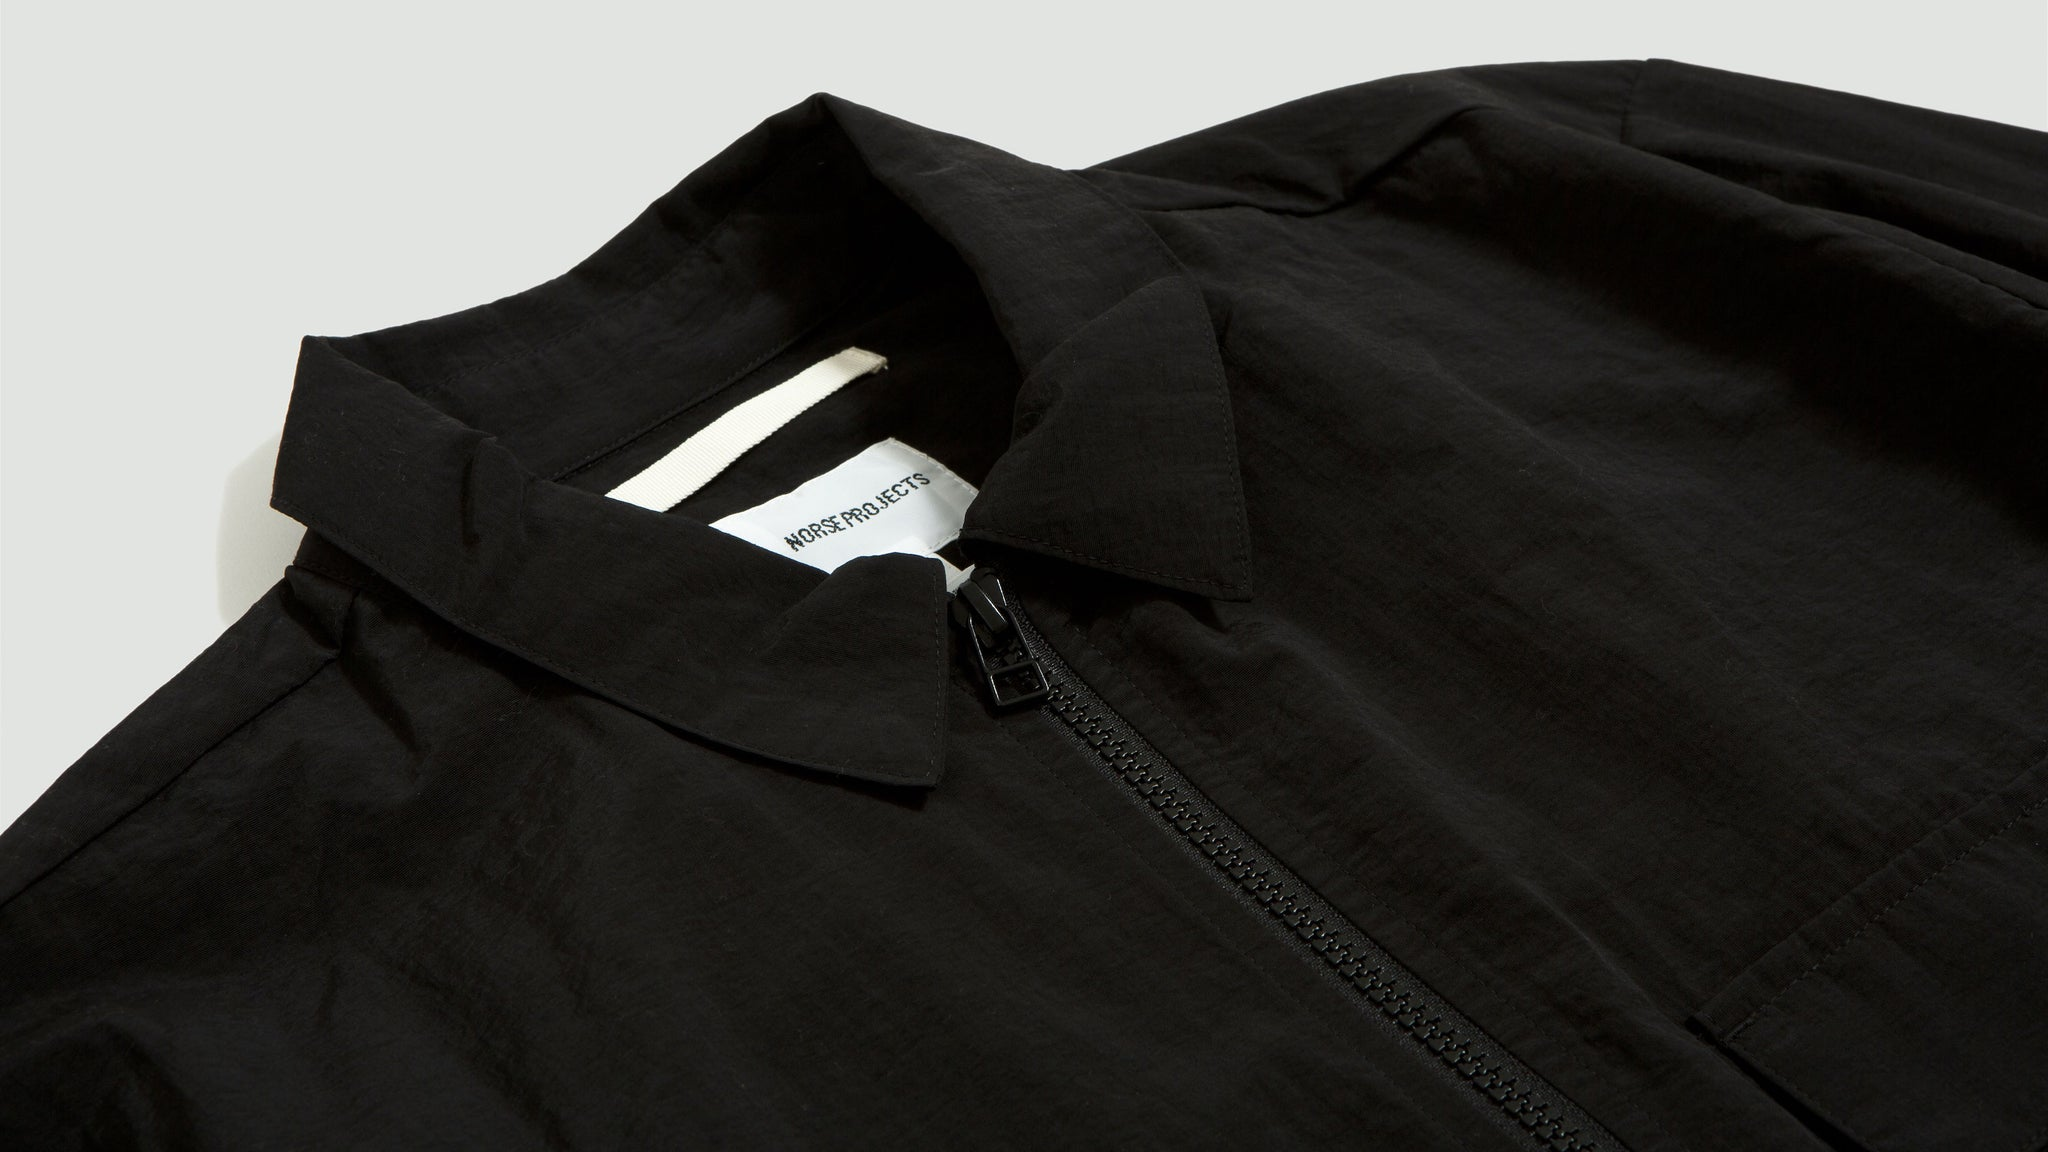 Jens Zip black